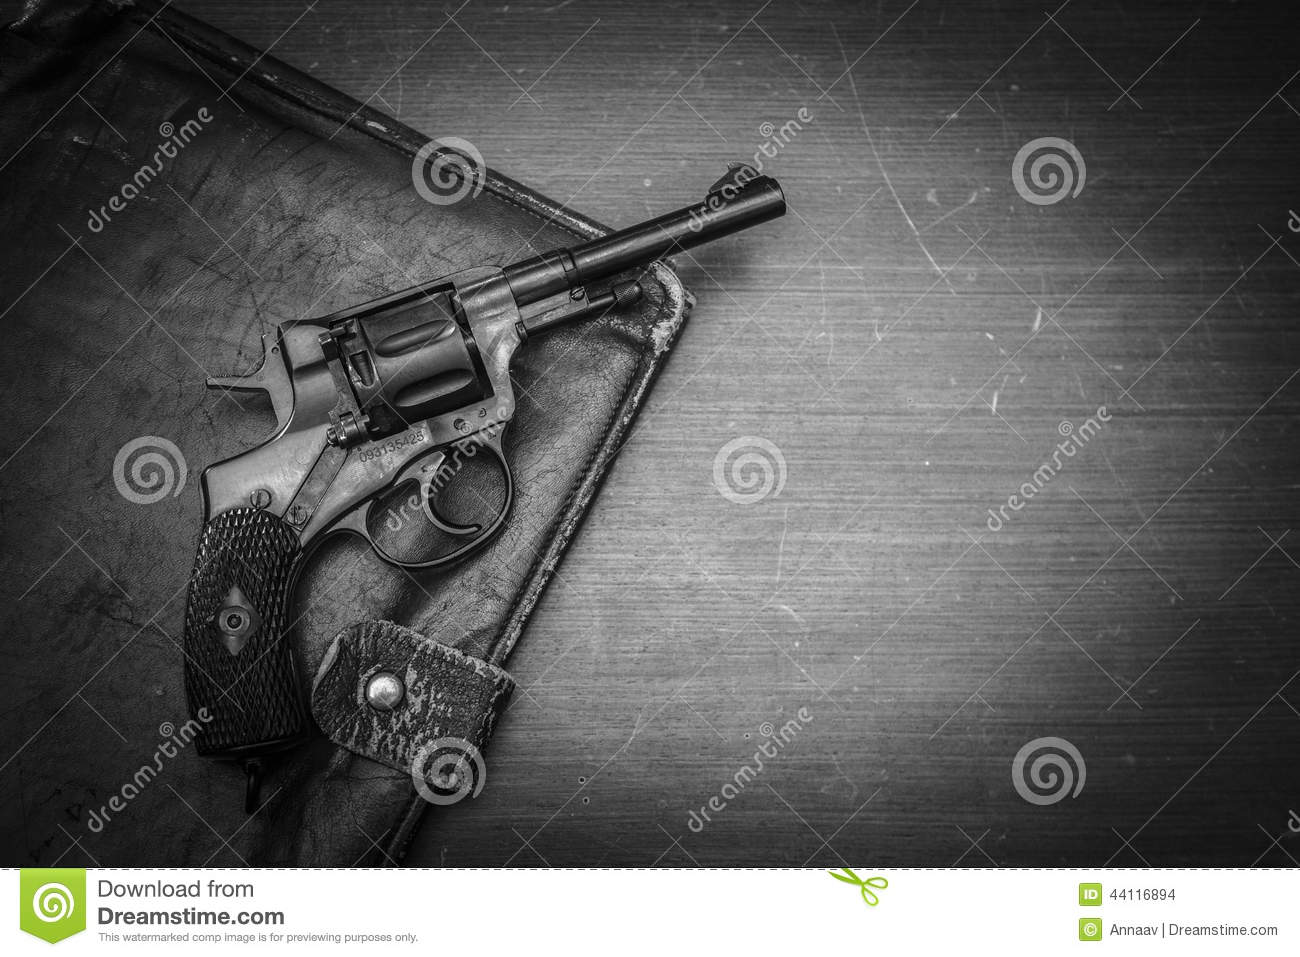 Black Revolver On A Wooden Table Stock Photo - Image: 44116894